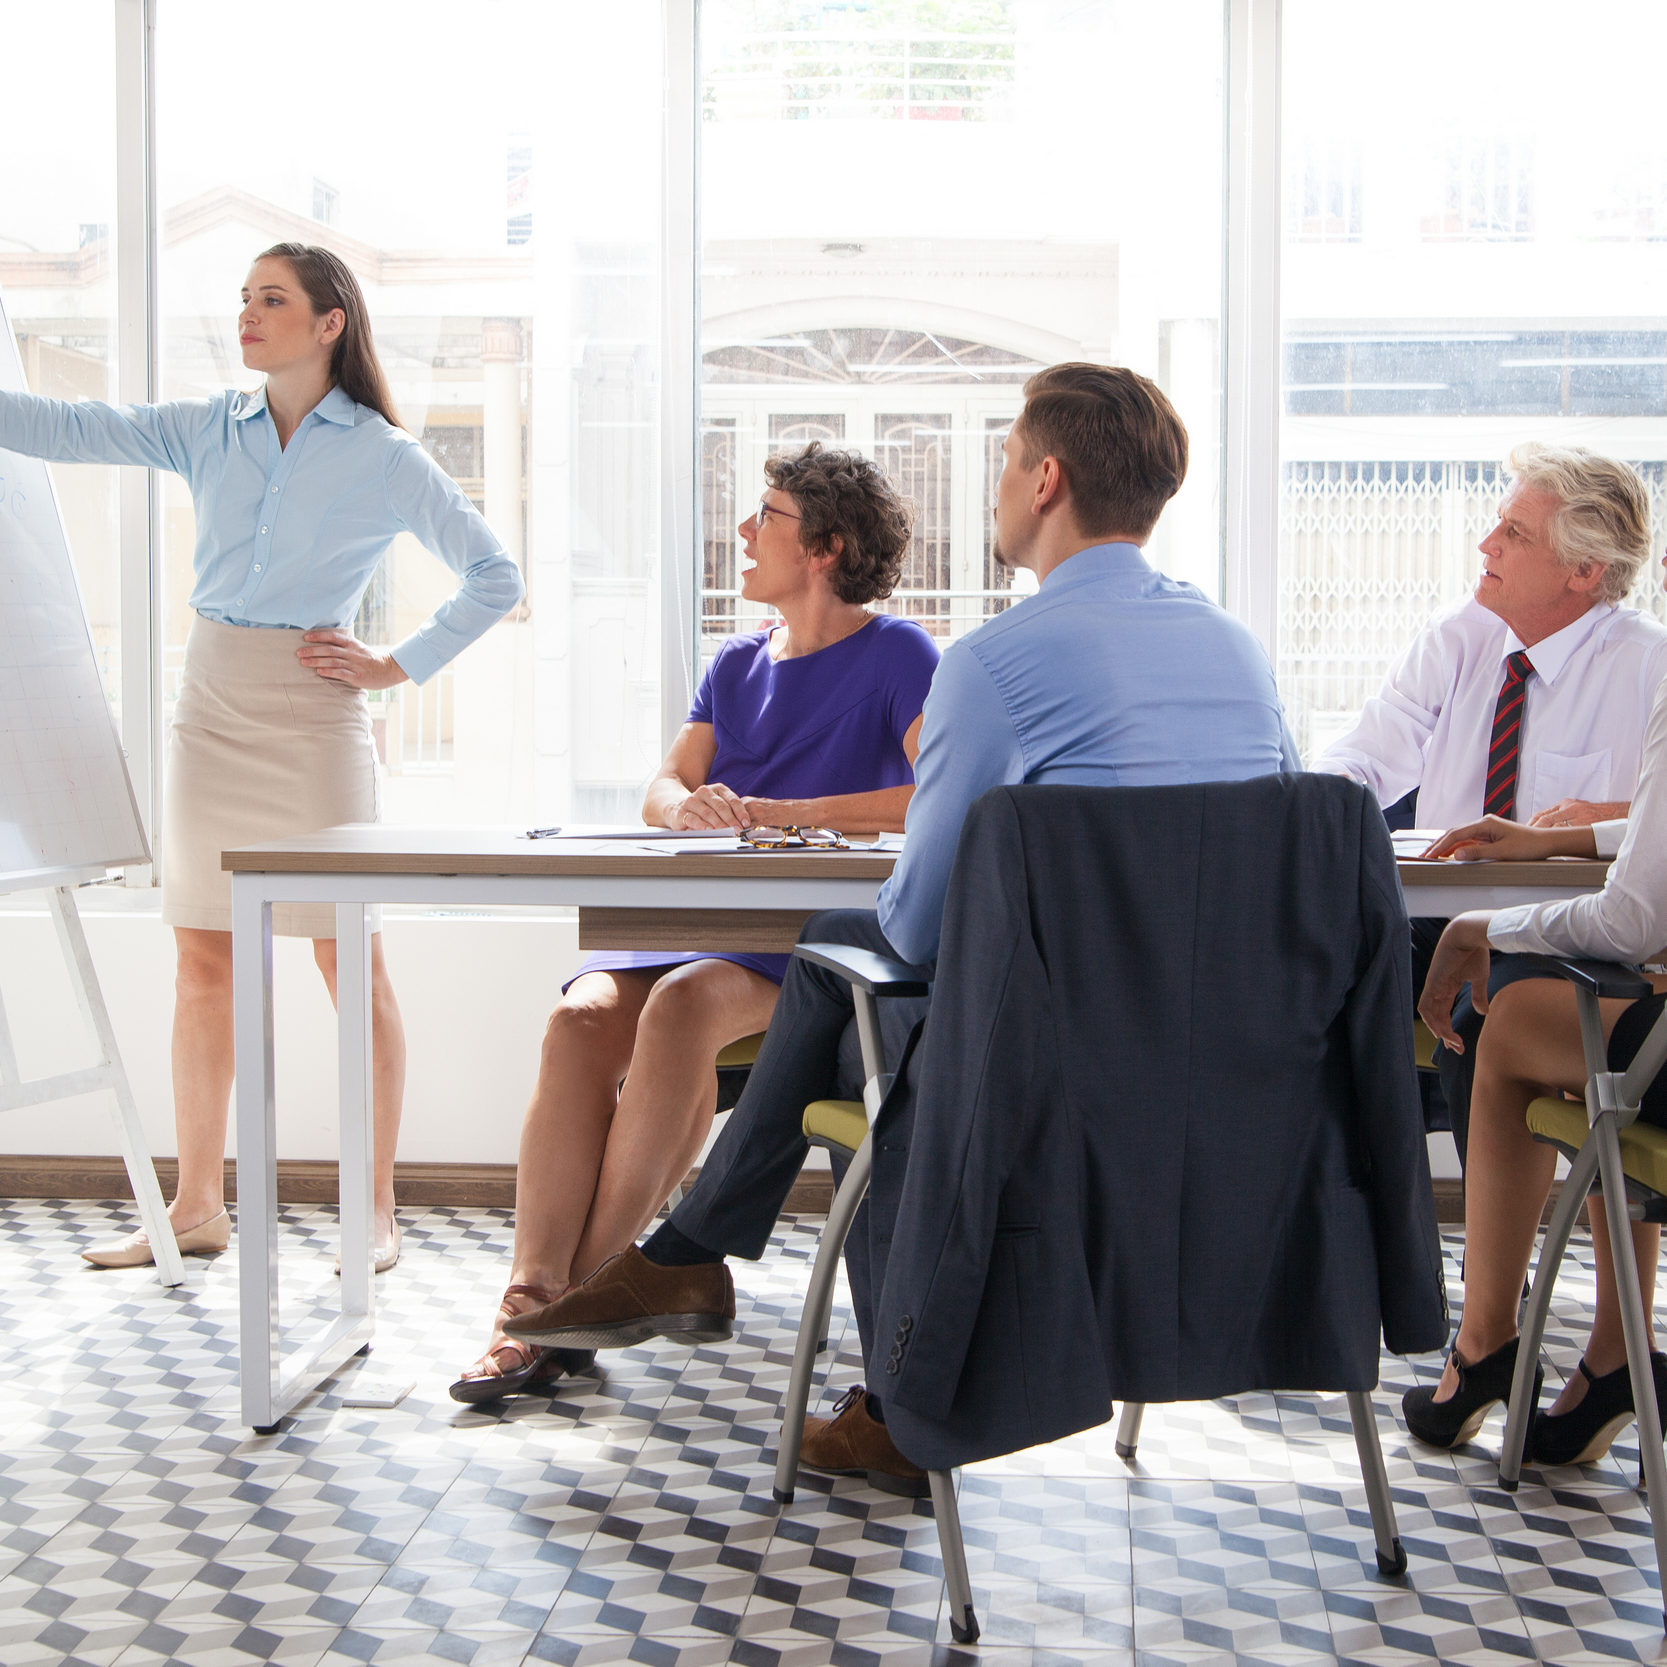 Confident female business coach pointing at whiteboard and explaining graph at meeting, group of four people listening to her. They sitting in conference room. Business training or education concept